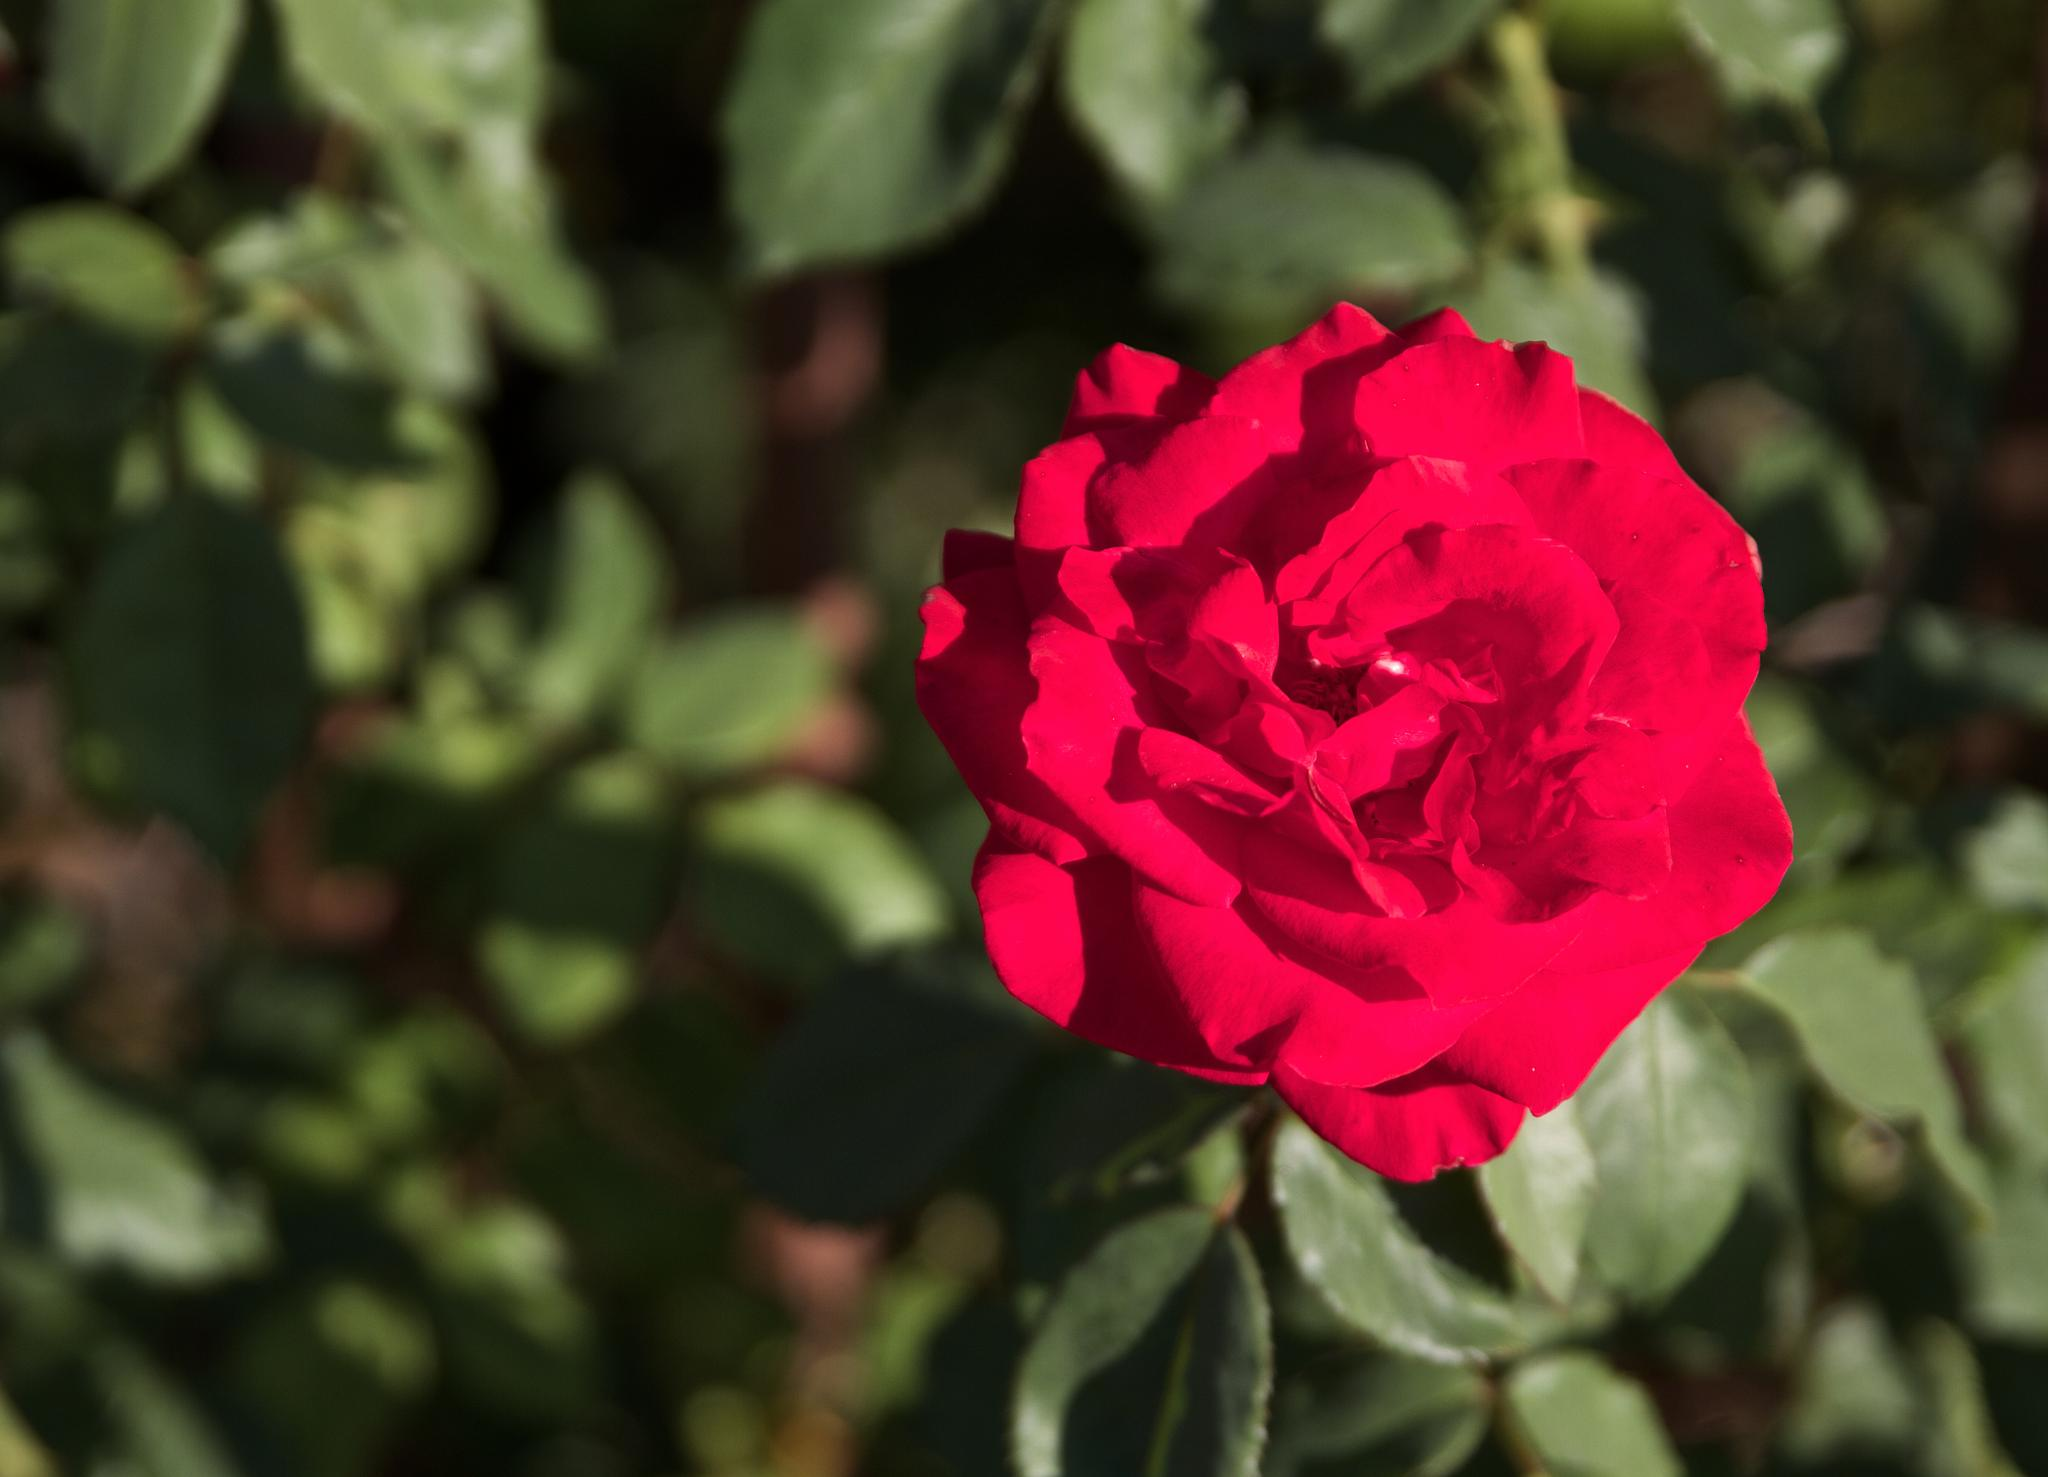 A Single Red Rose by emet441